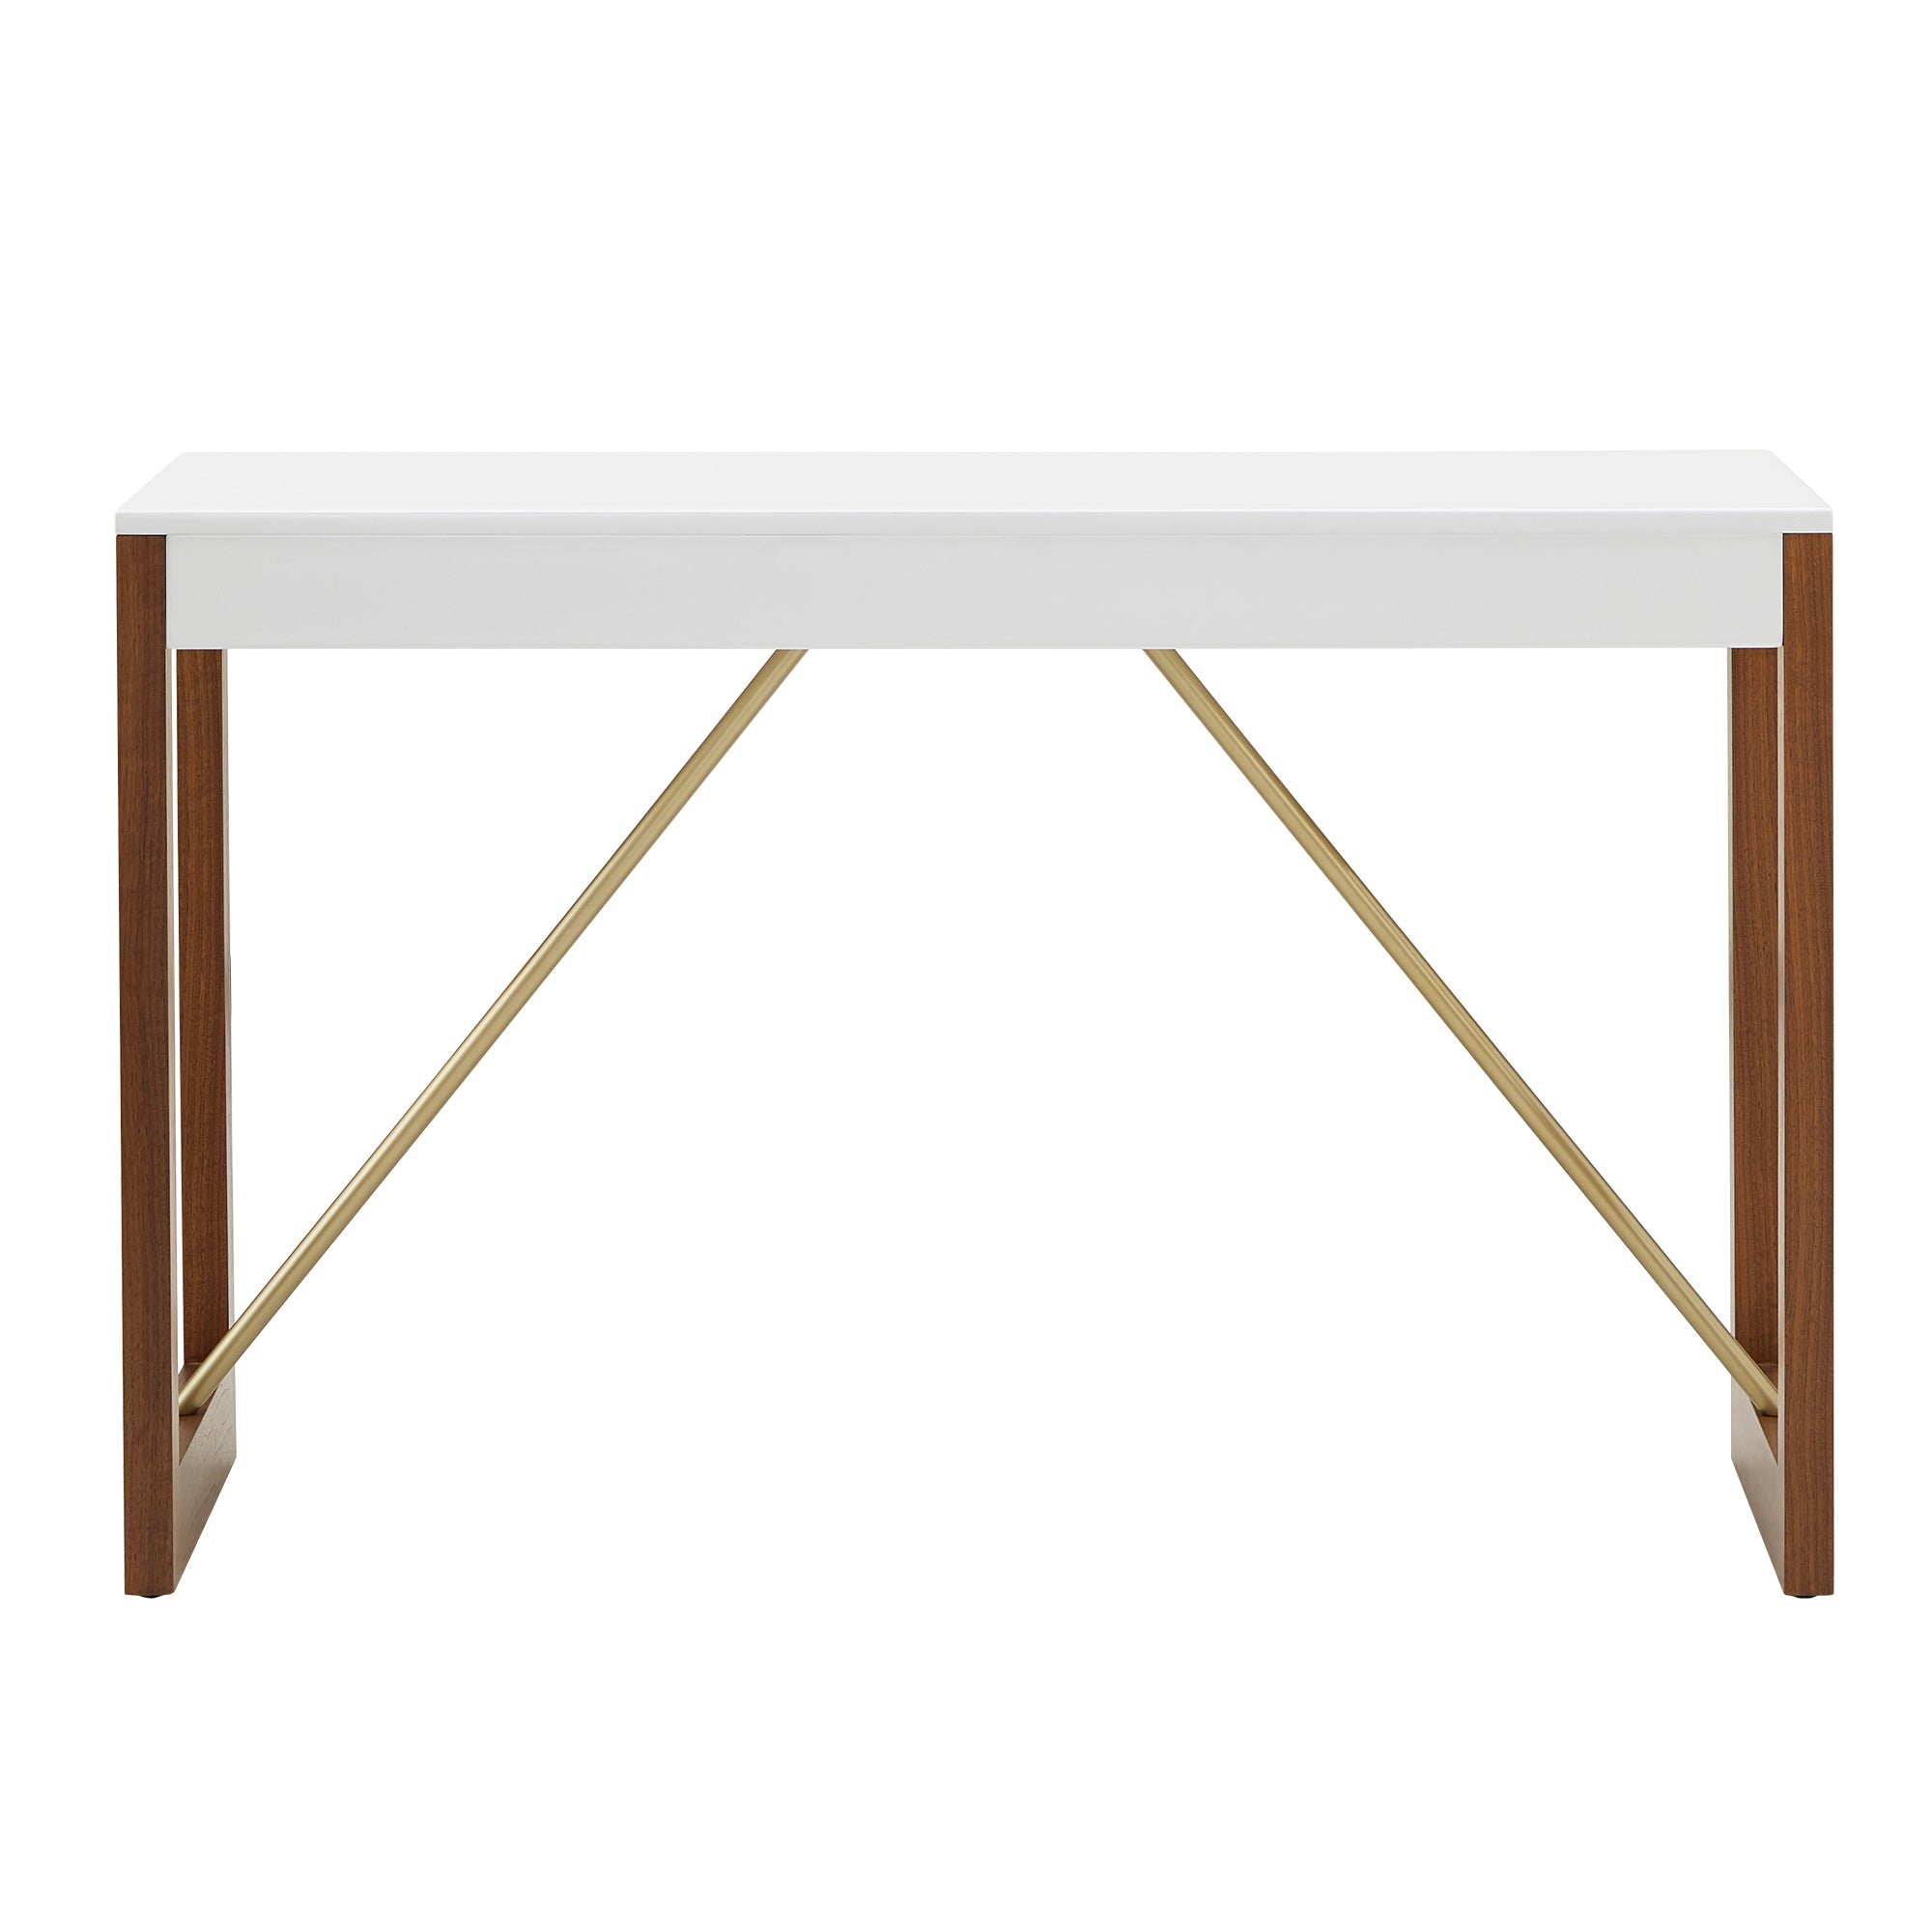 Two-Tone High Gloss White and Walnut Finish Table - Sofa Table